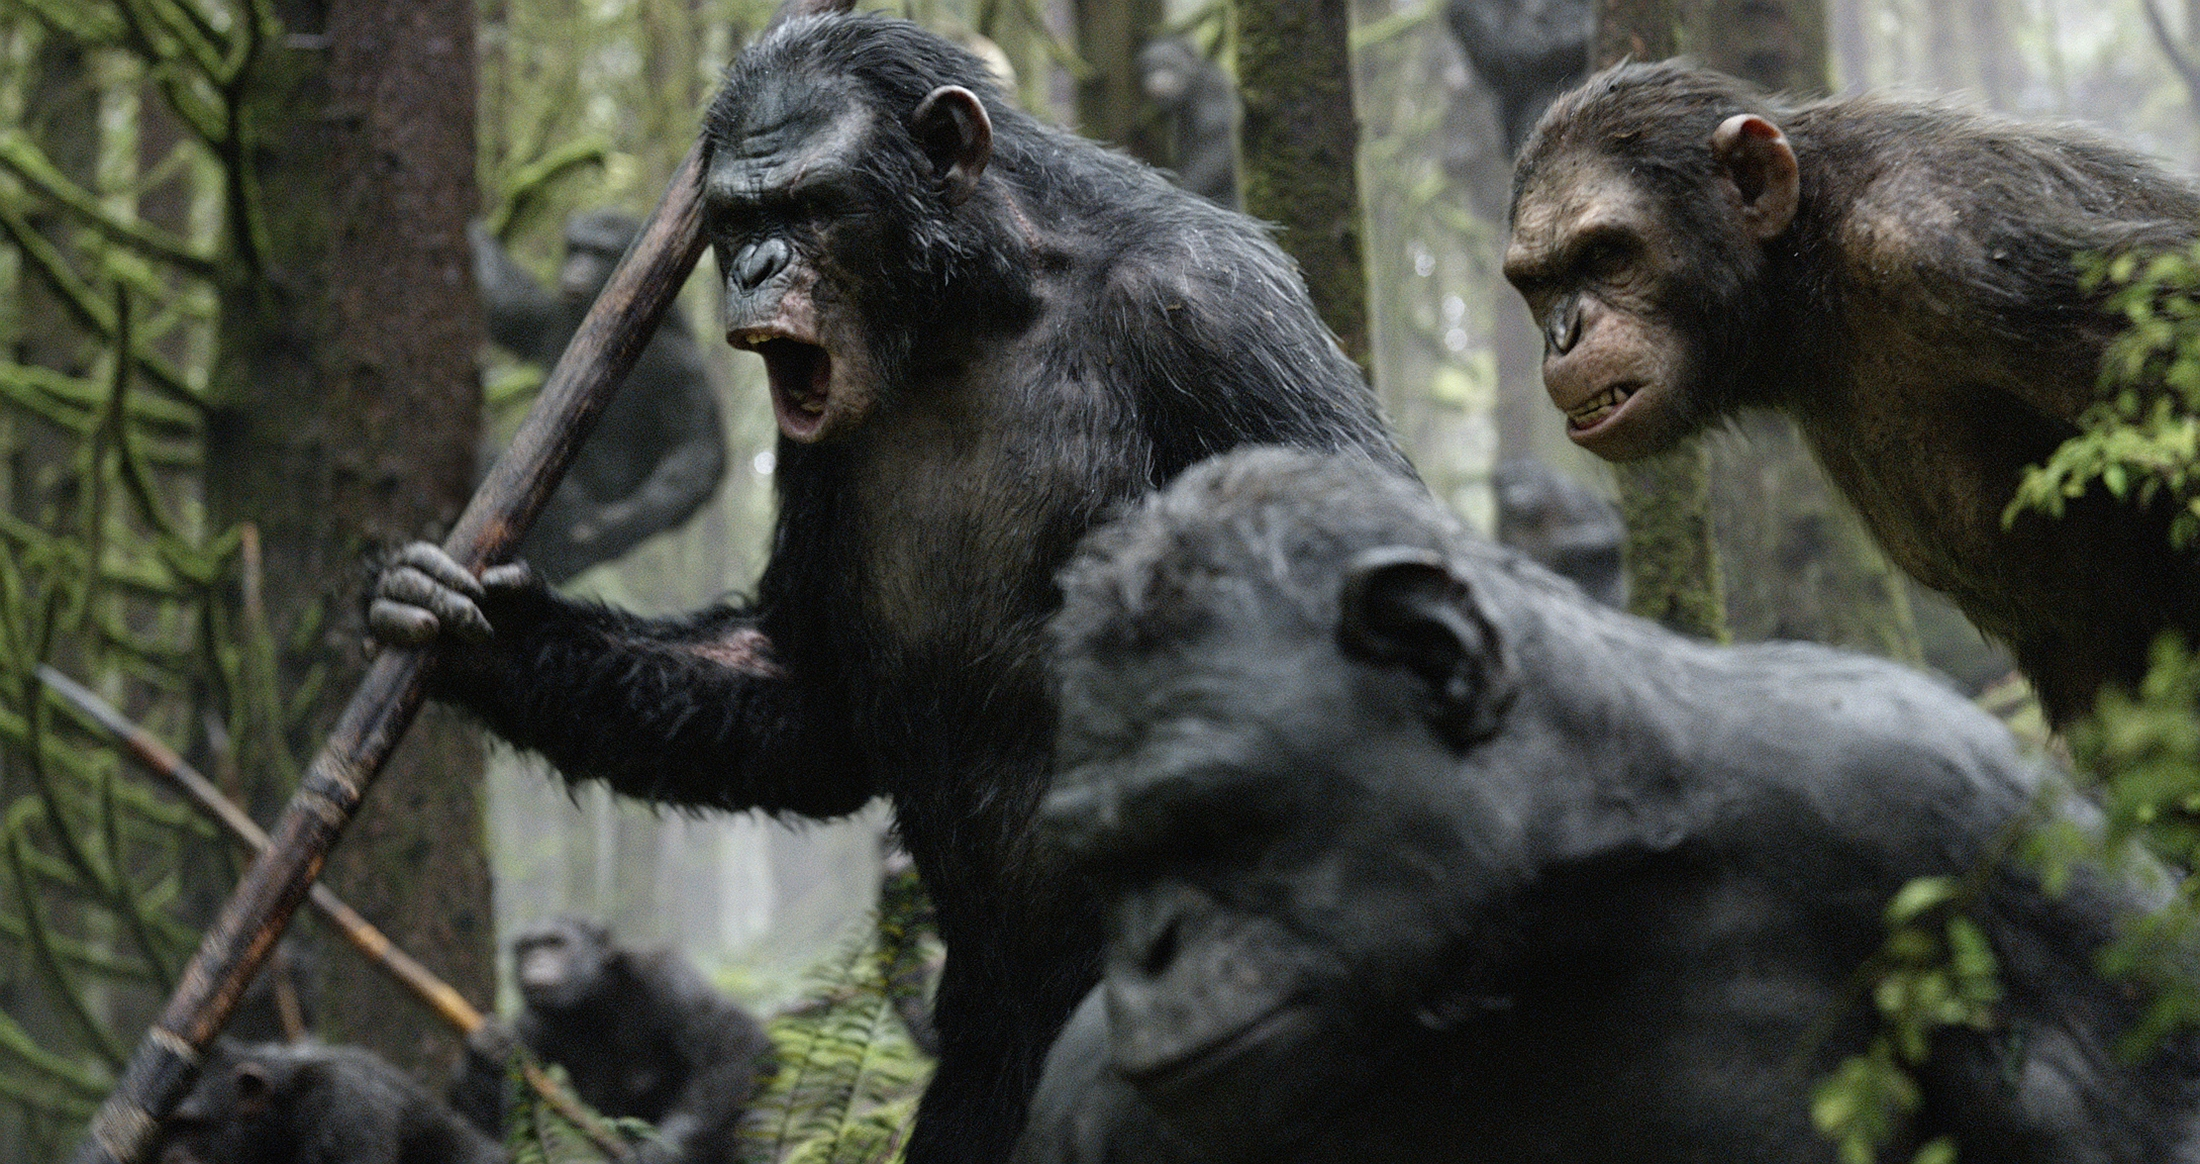 Planet Of The Apes Wallpaper: Dawn Of The Planet Of The Apes HD Wallpaper